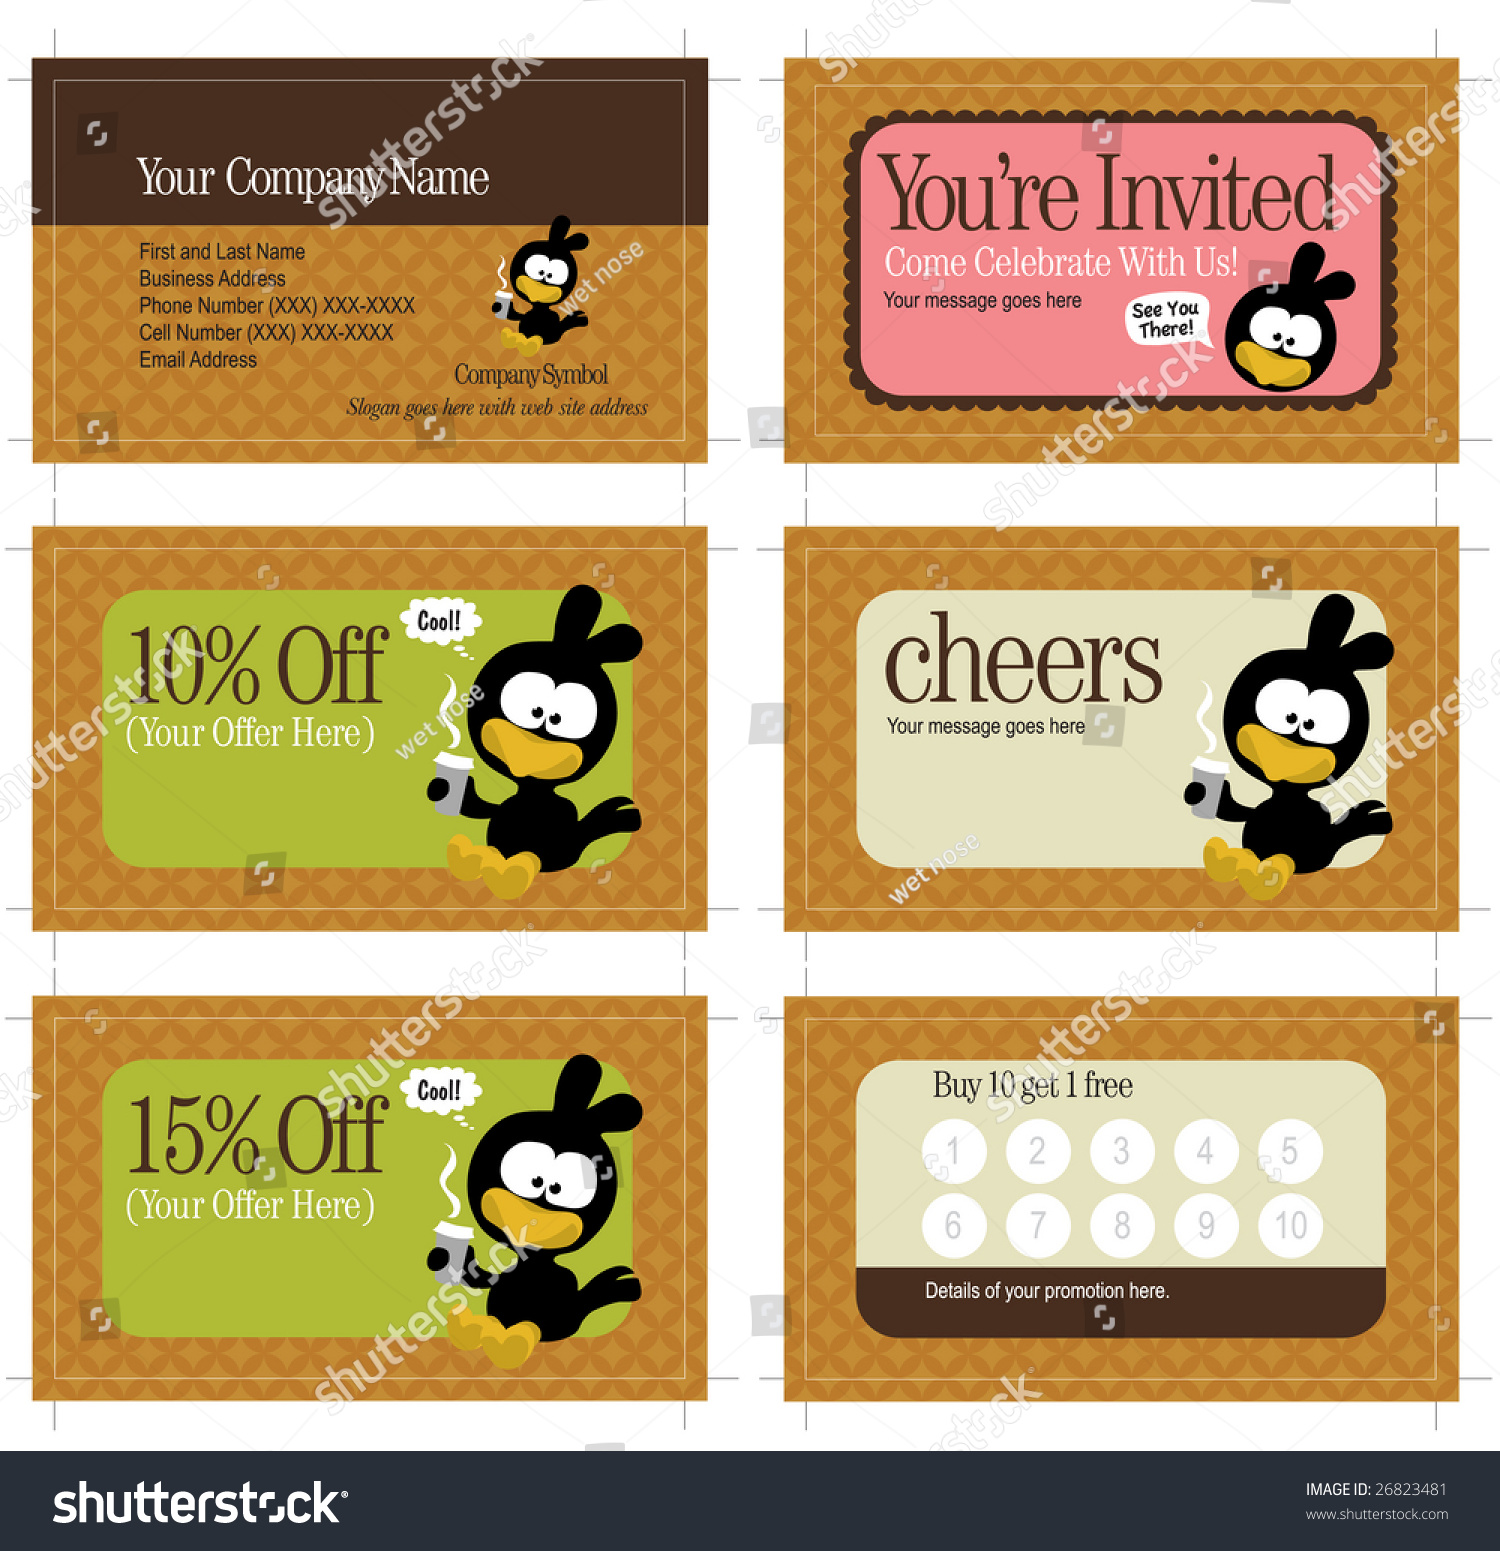 35x2 Business Card Promo Cards Includes Stock Vector 26823481 ...